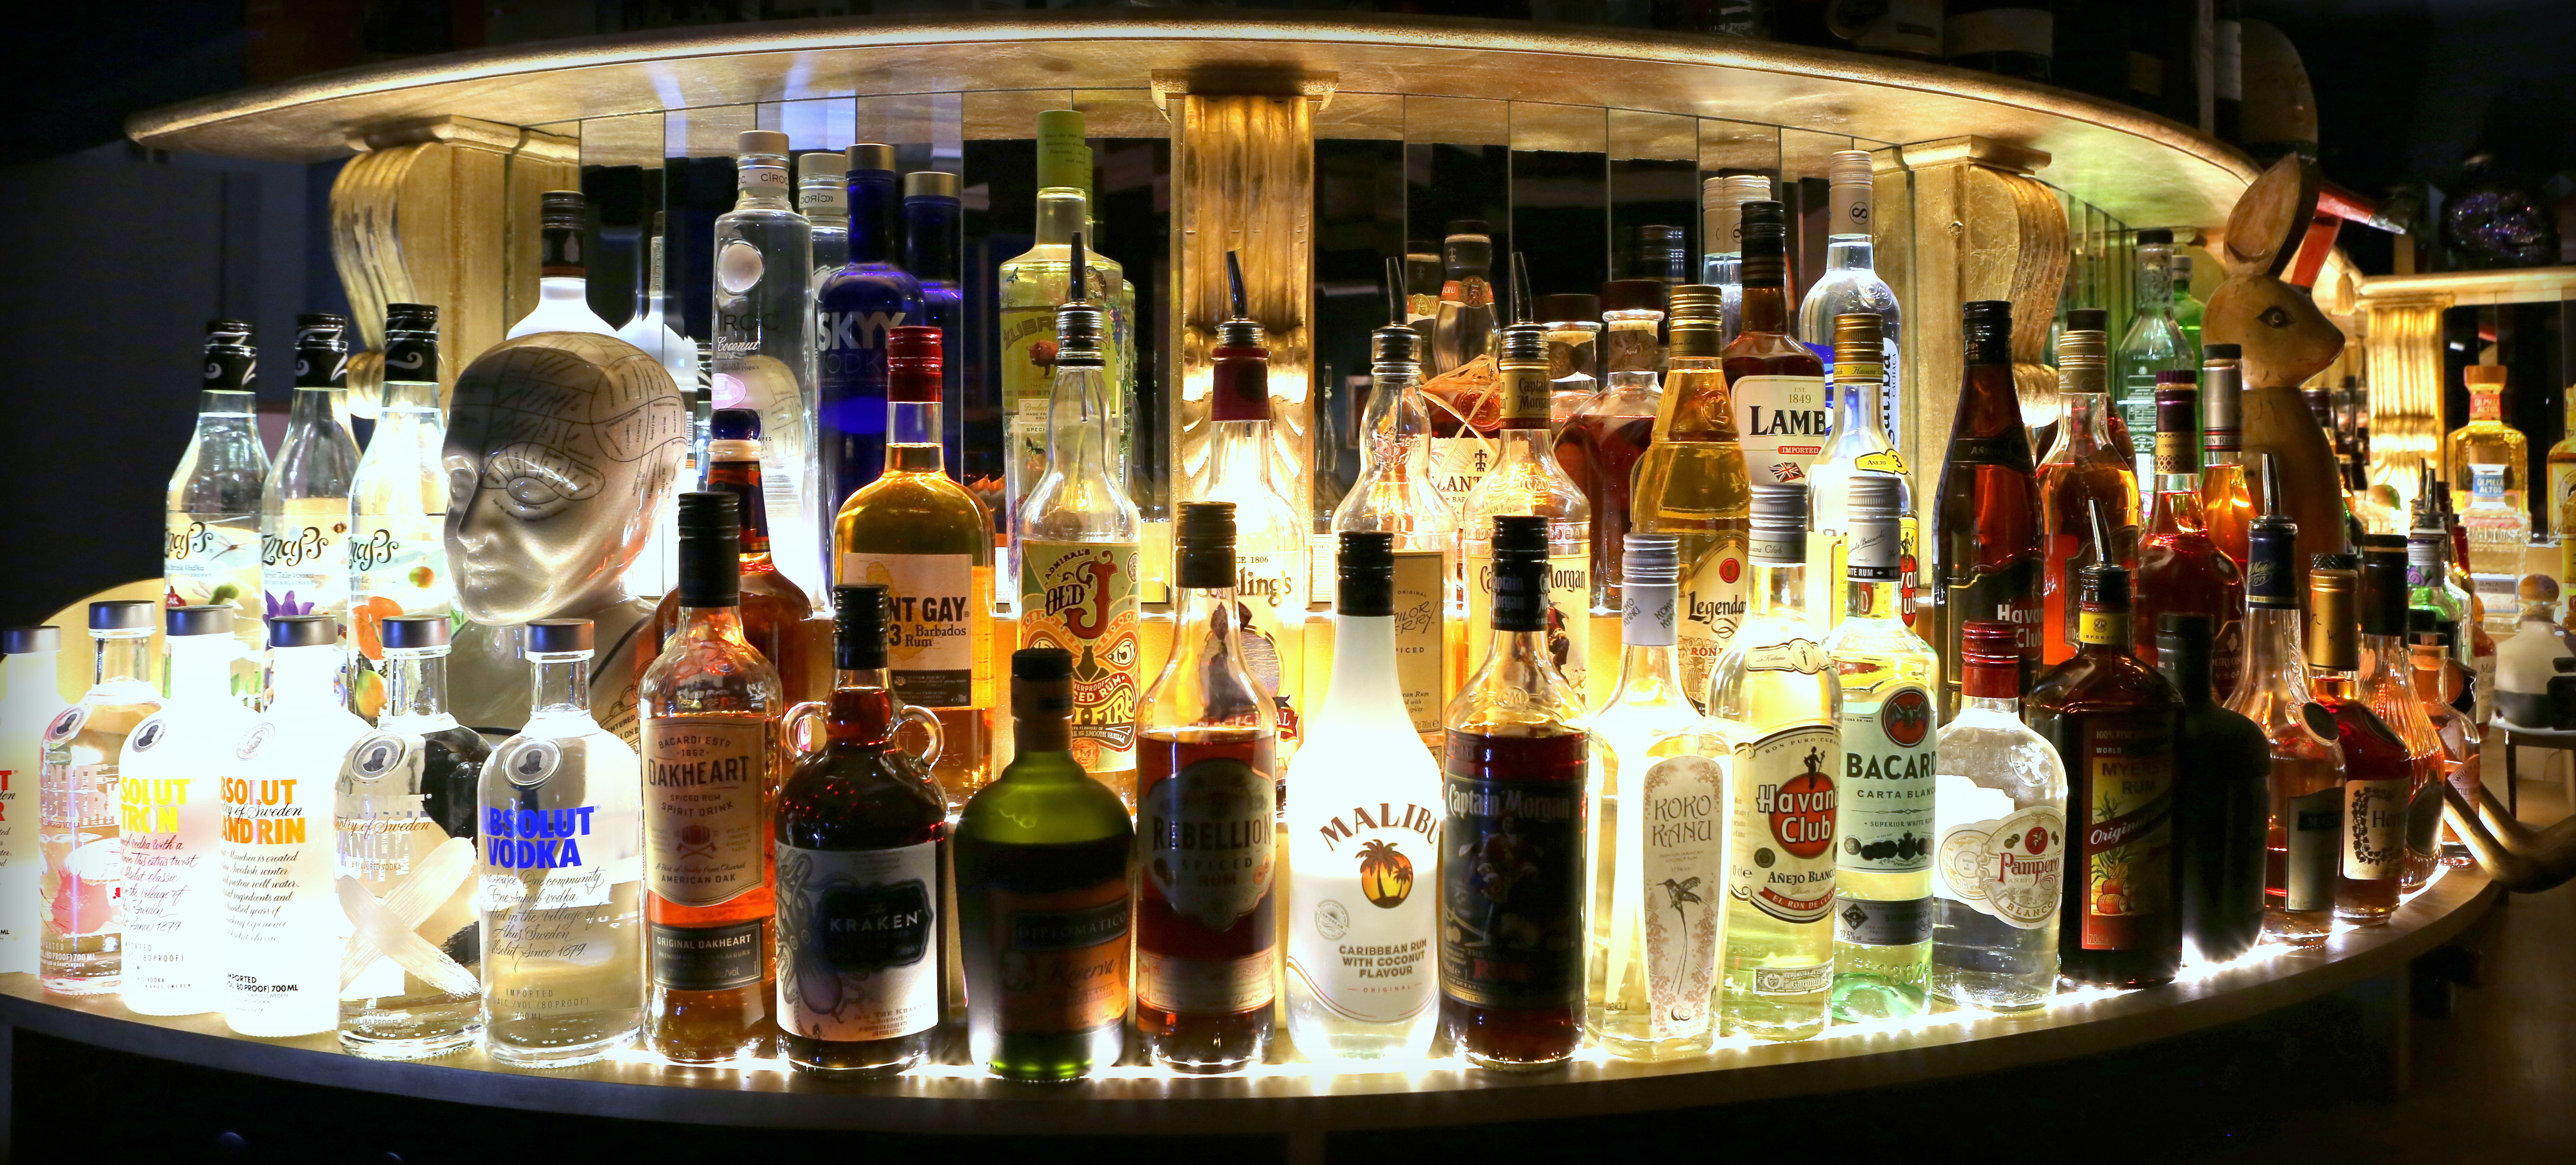 Small selection from the back bar